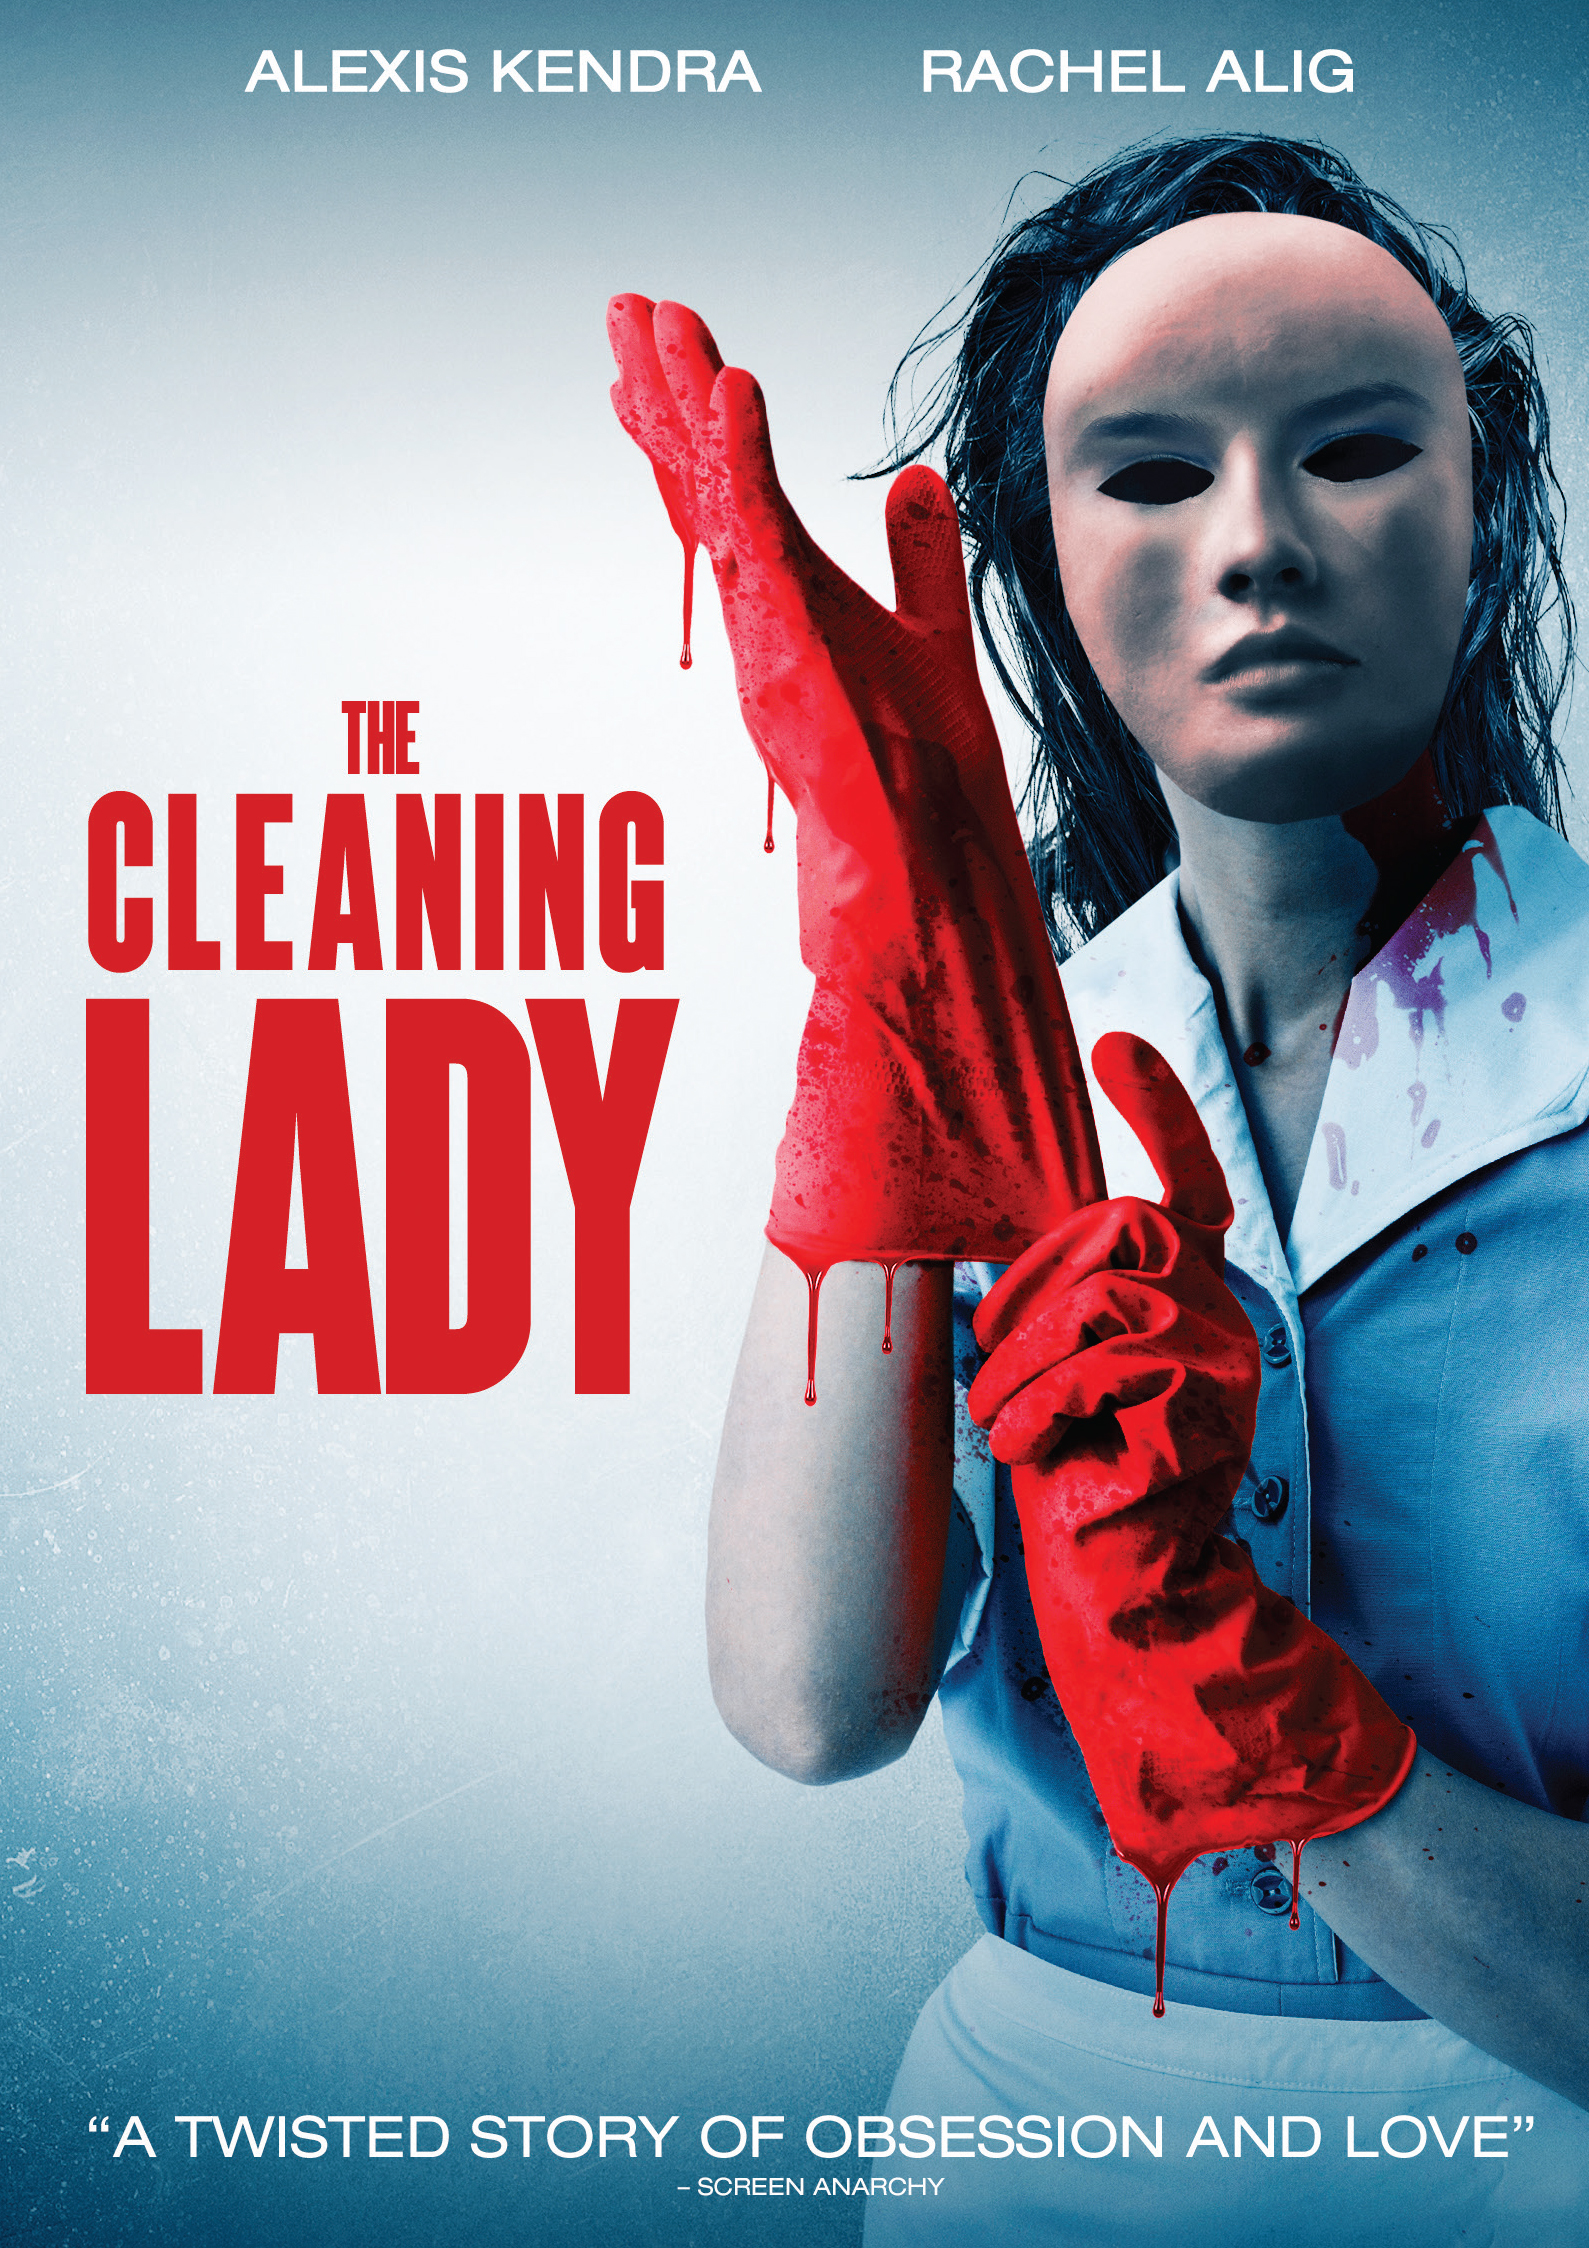 VALYTOJA (2018) / THE CLEANING LADY